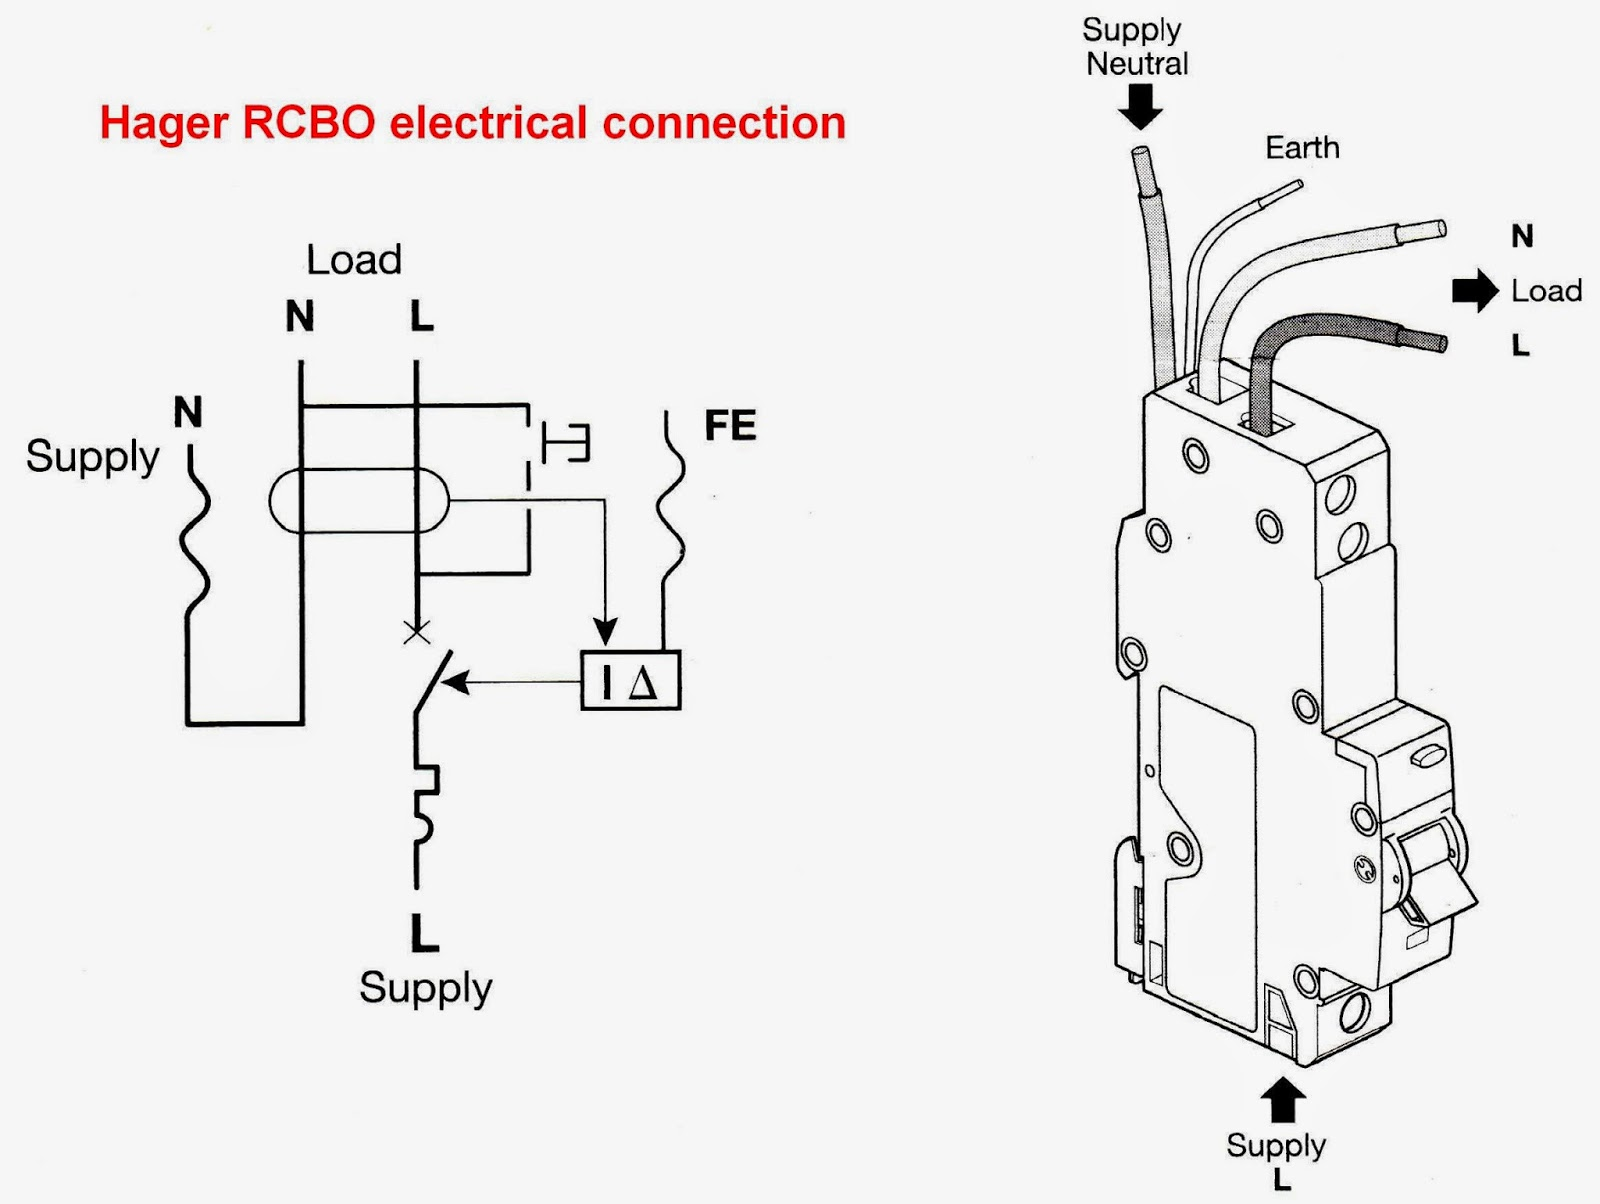 perfect rcbo wiring diagram picture collection best images for rh oursweetbakeshop info Hager Rcbo Rcbo 15A